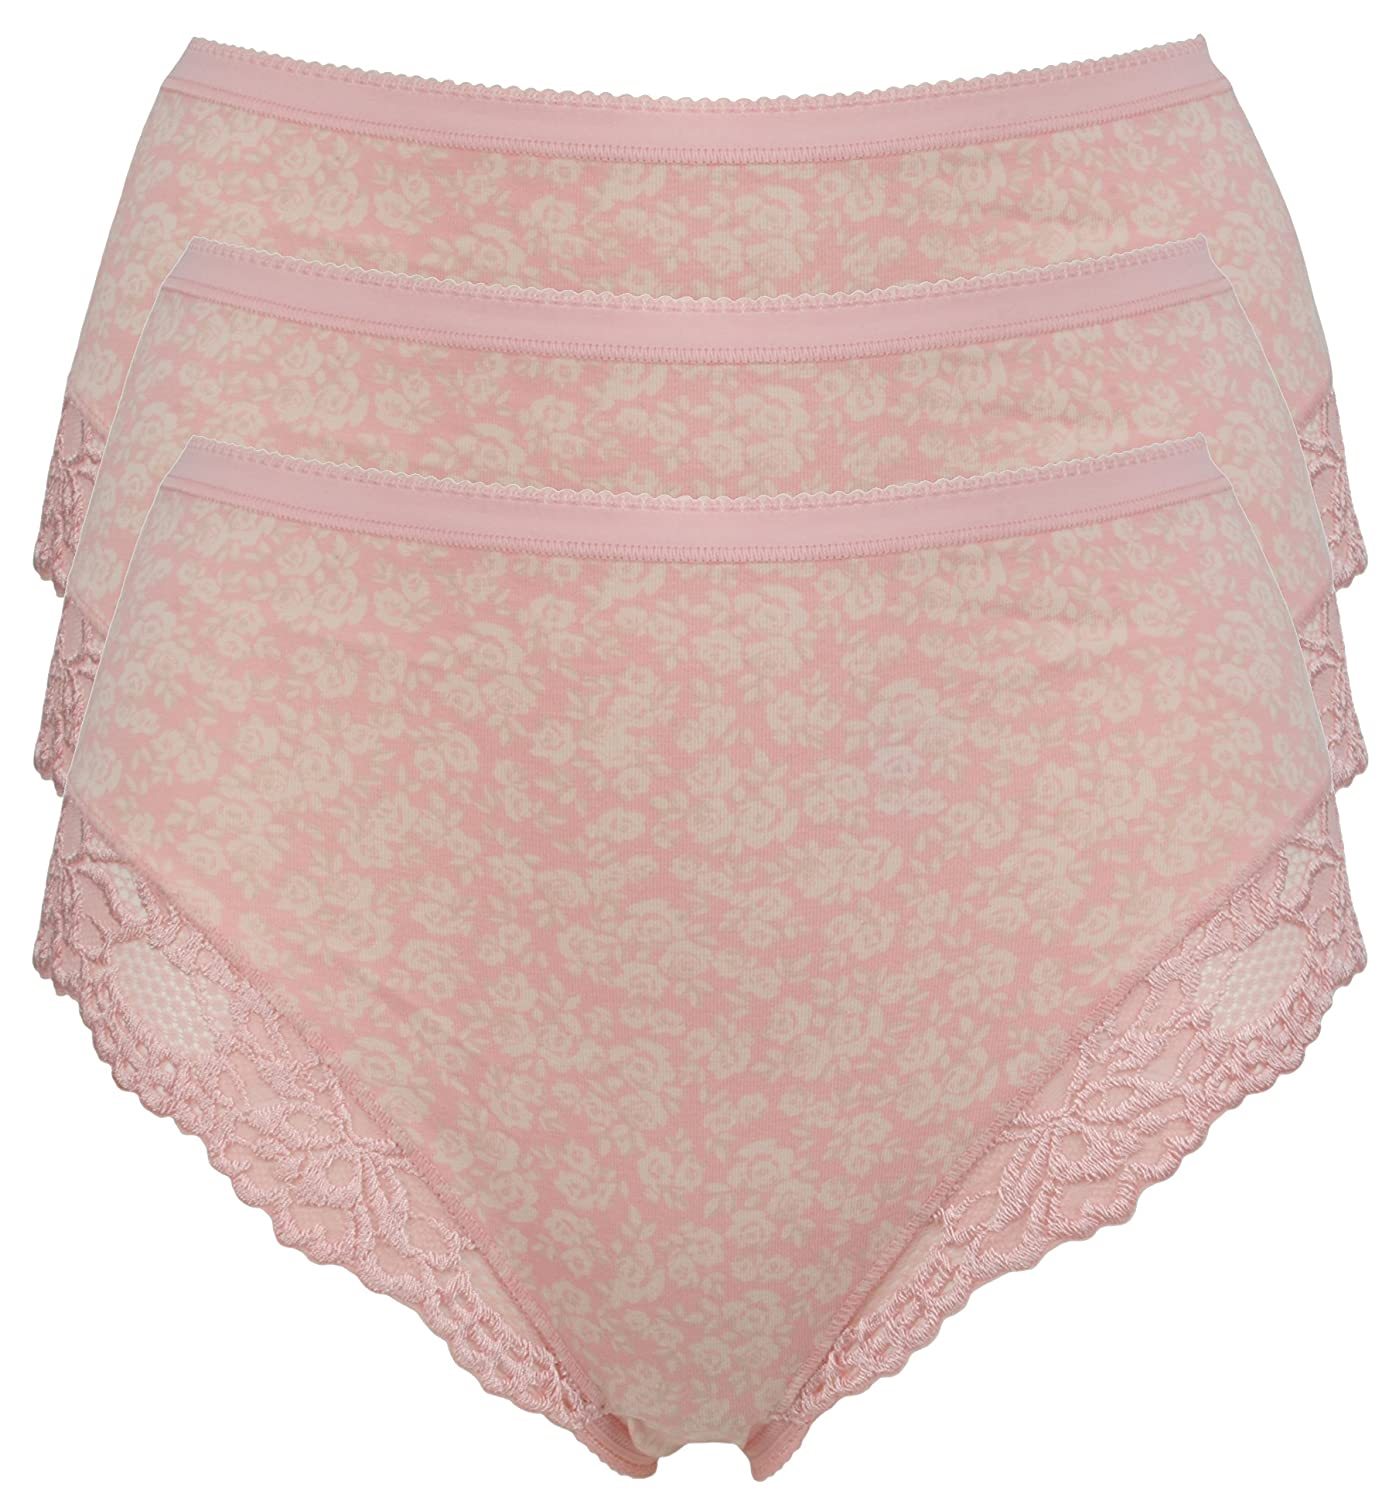 M /& S size 10 cotton rich high leg knickers panties briefs Rose Pink